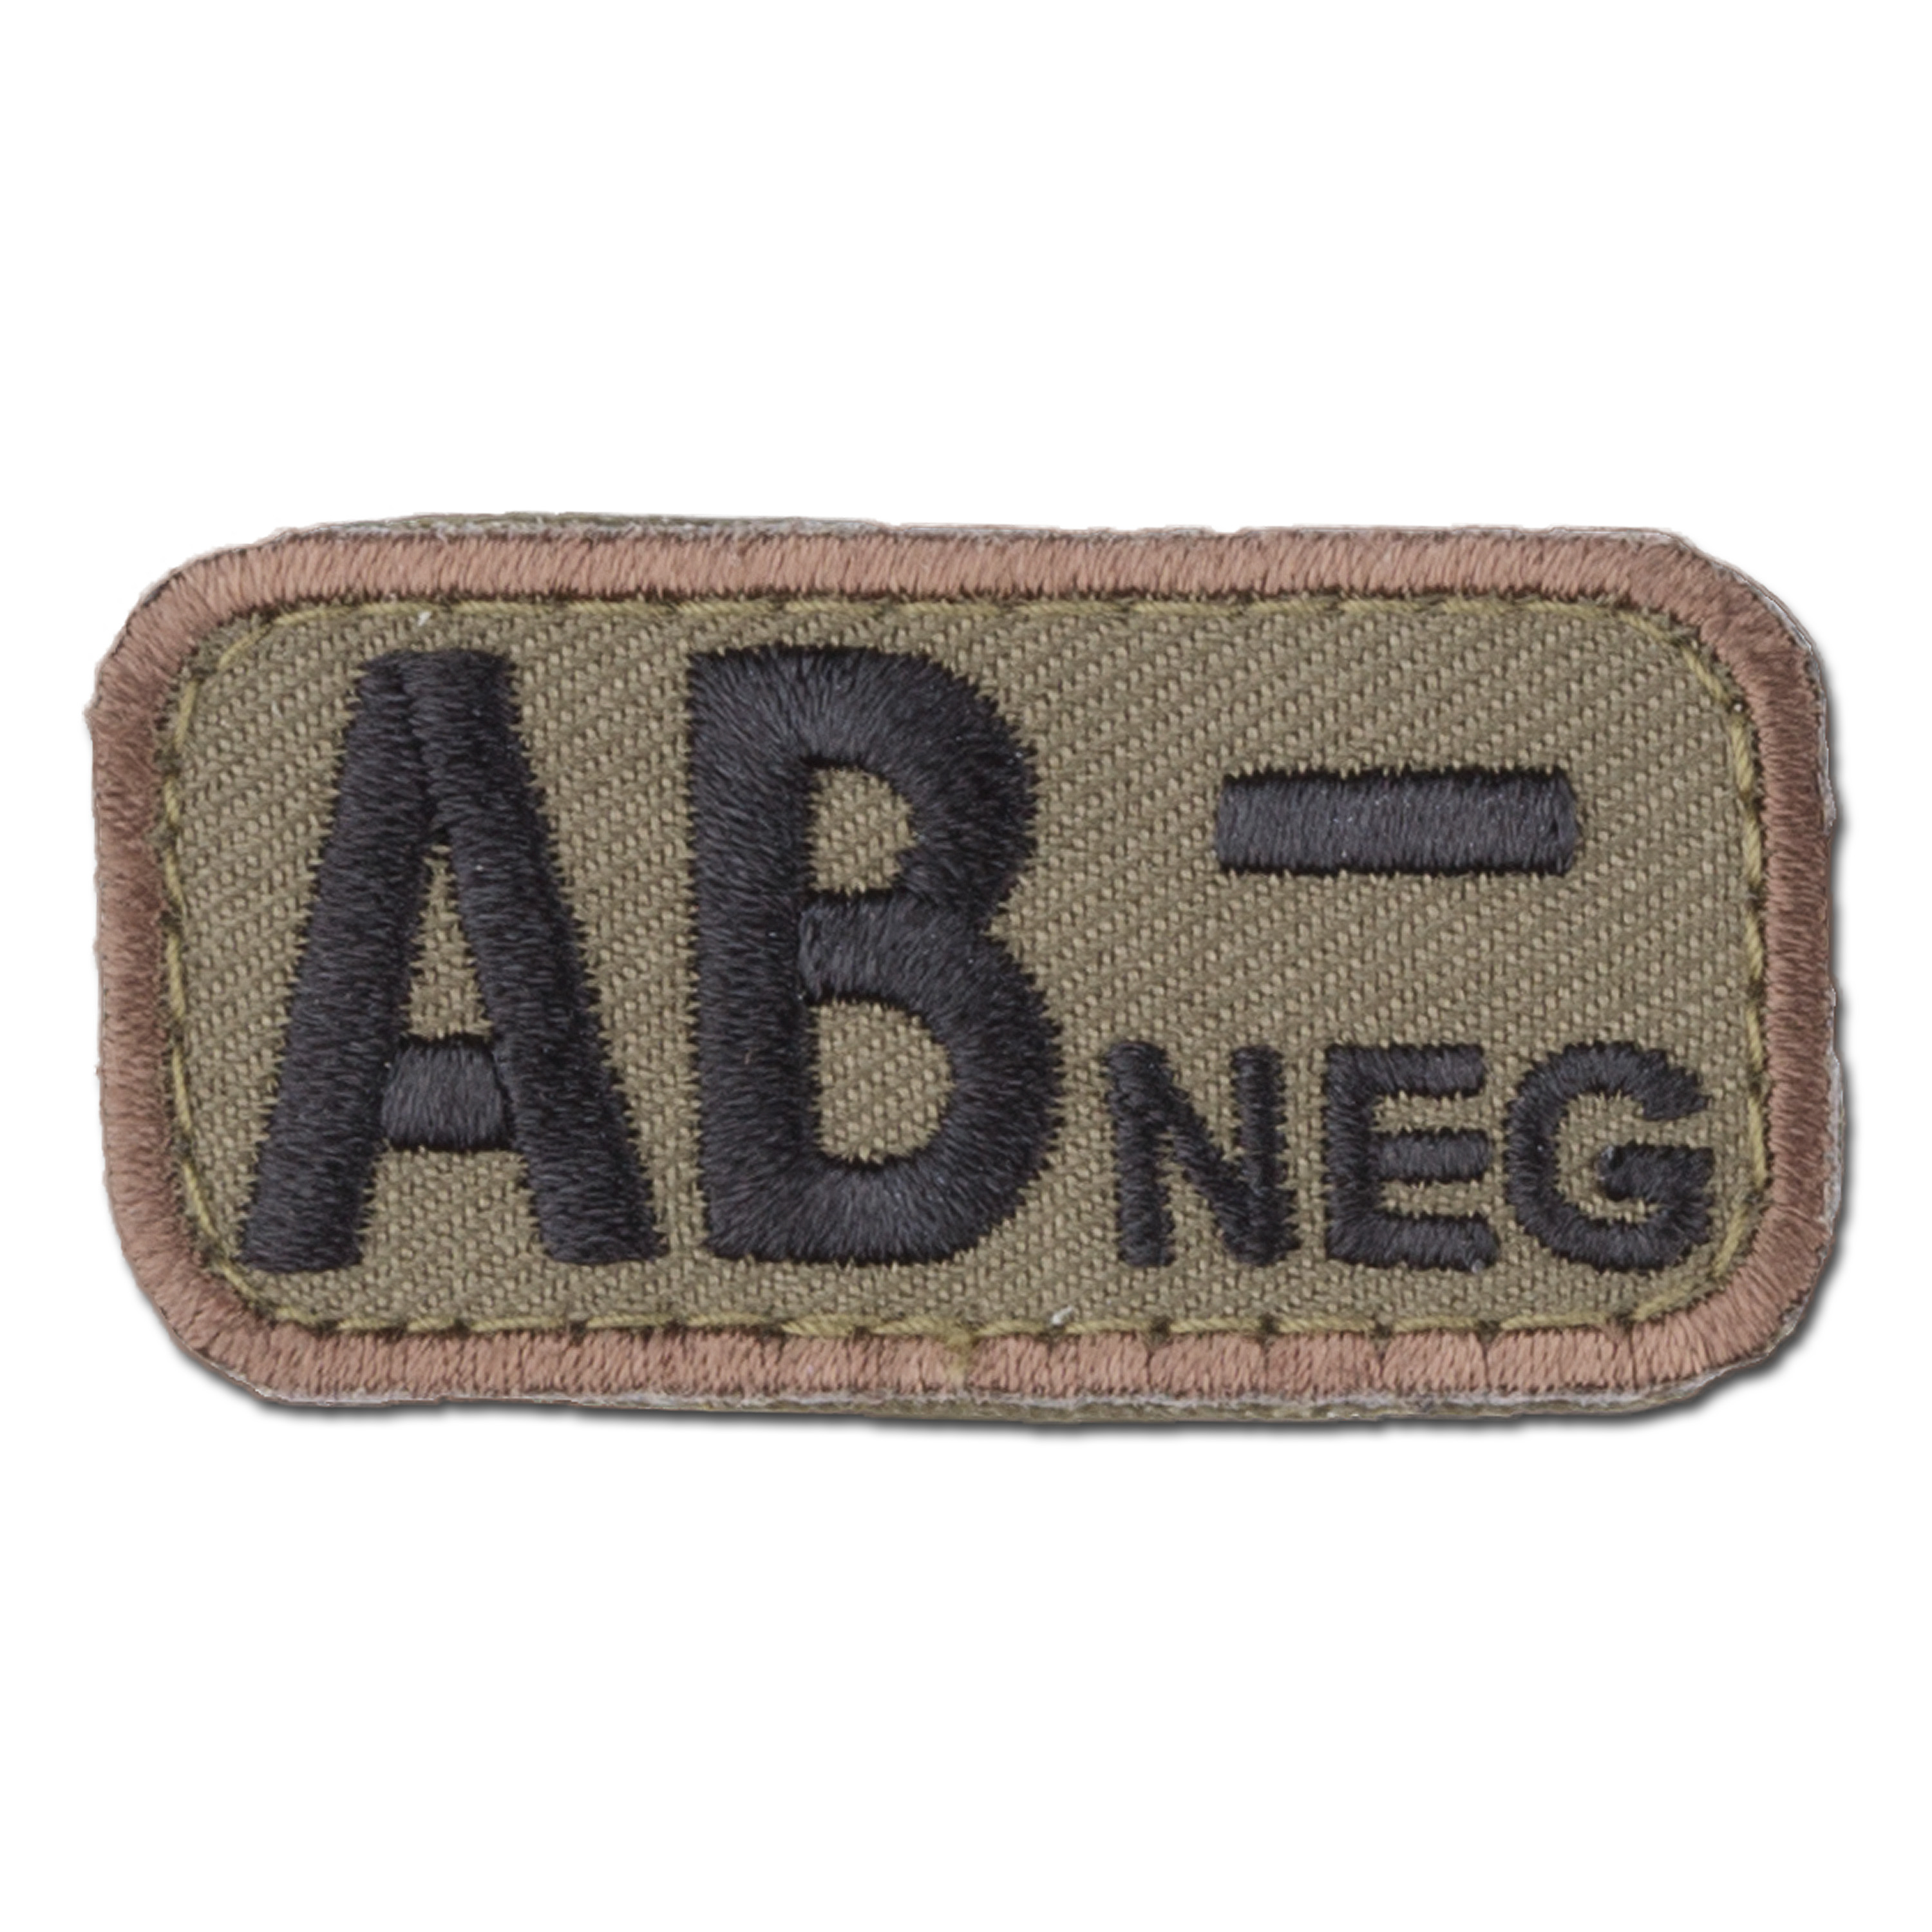 MilSpecMonkey Patch Blood Type AB Neg forest